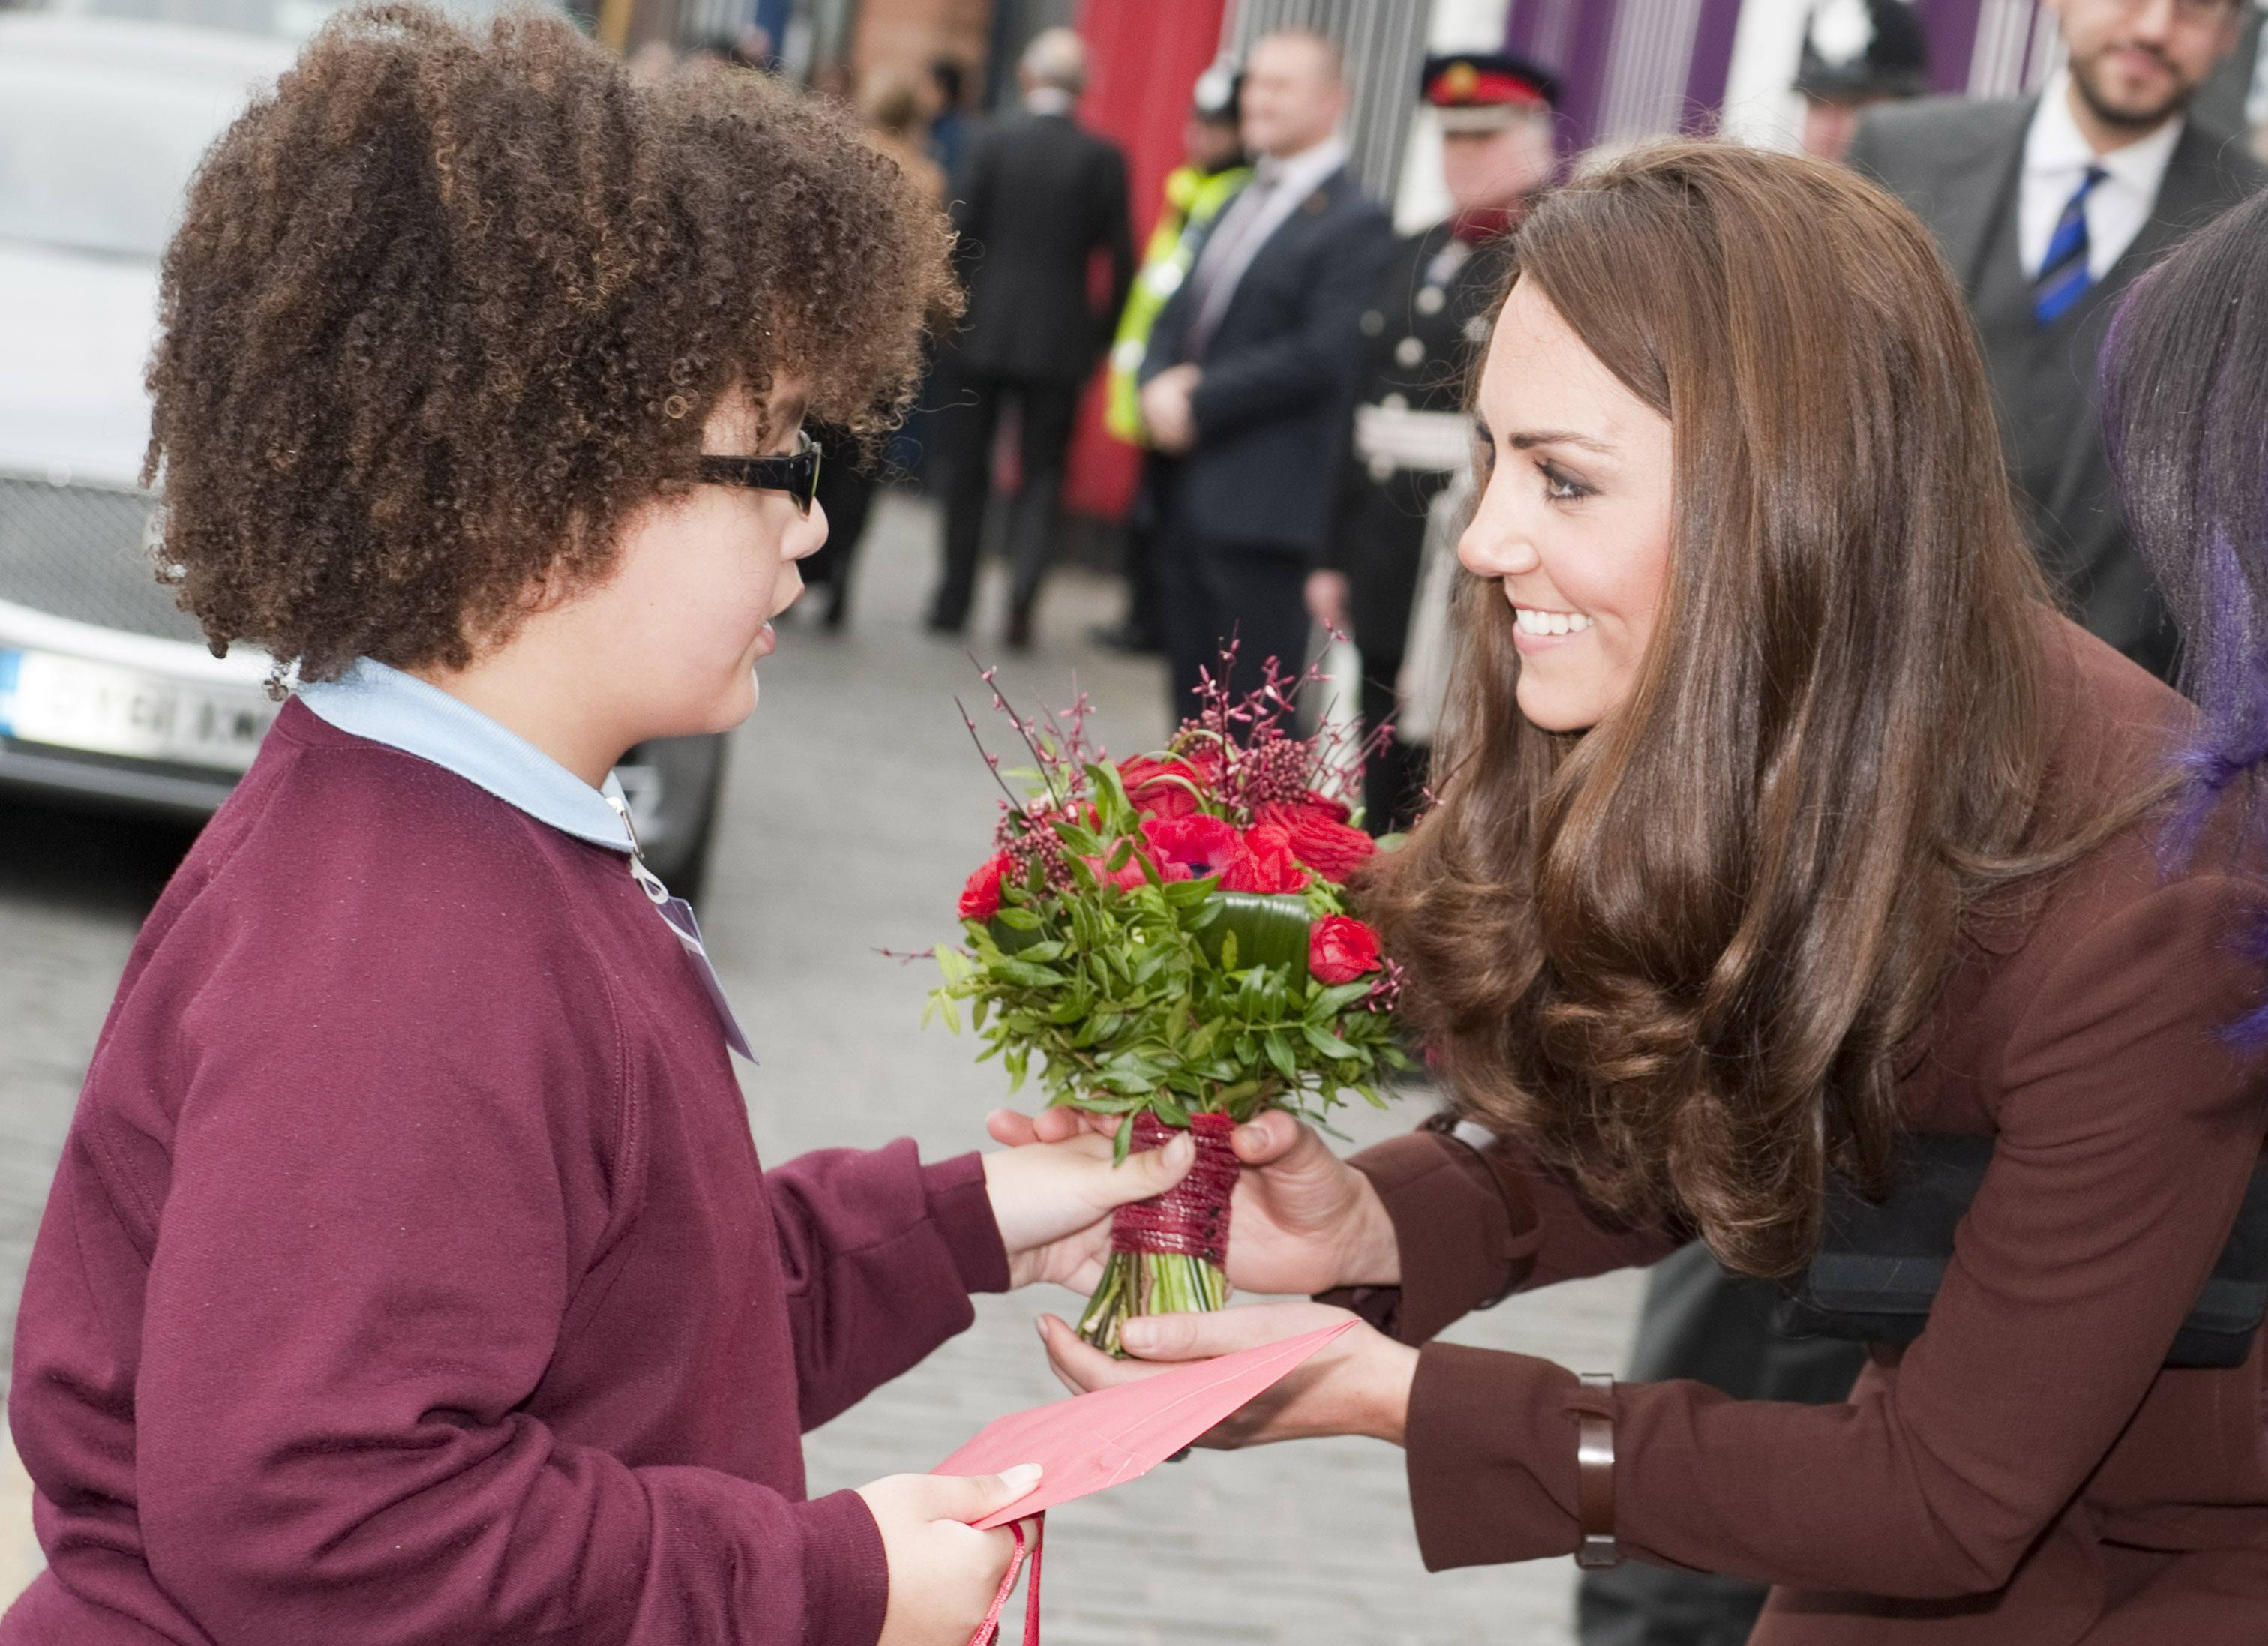 Eight-year-old Jaqson Johnston-Lynch presents Catherine, Duchess of Cambridge a posey of red roses and Valentine's Day present.